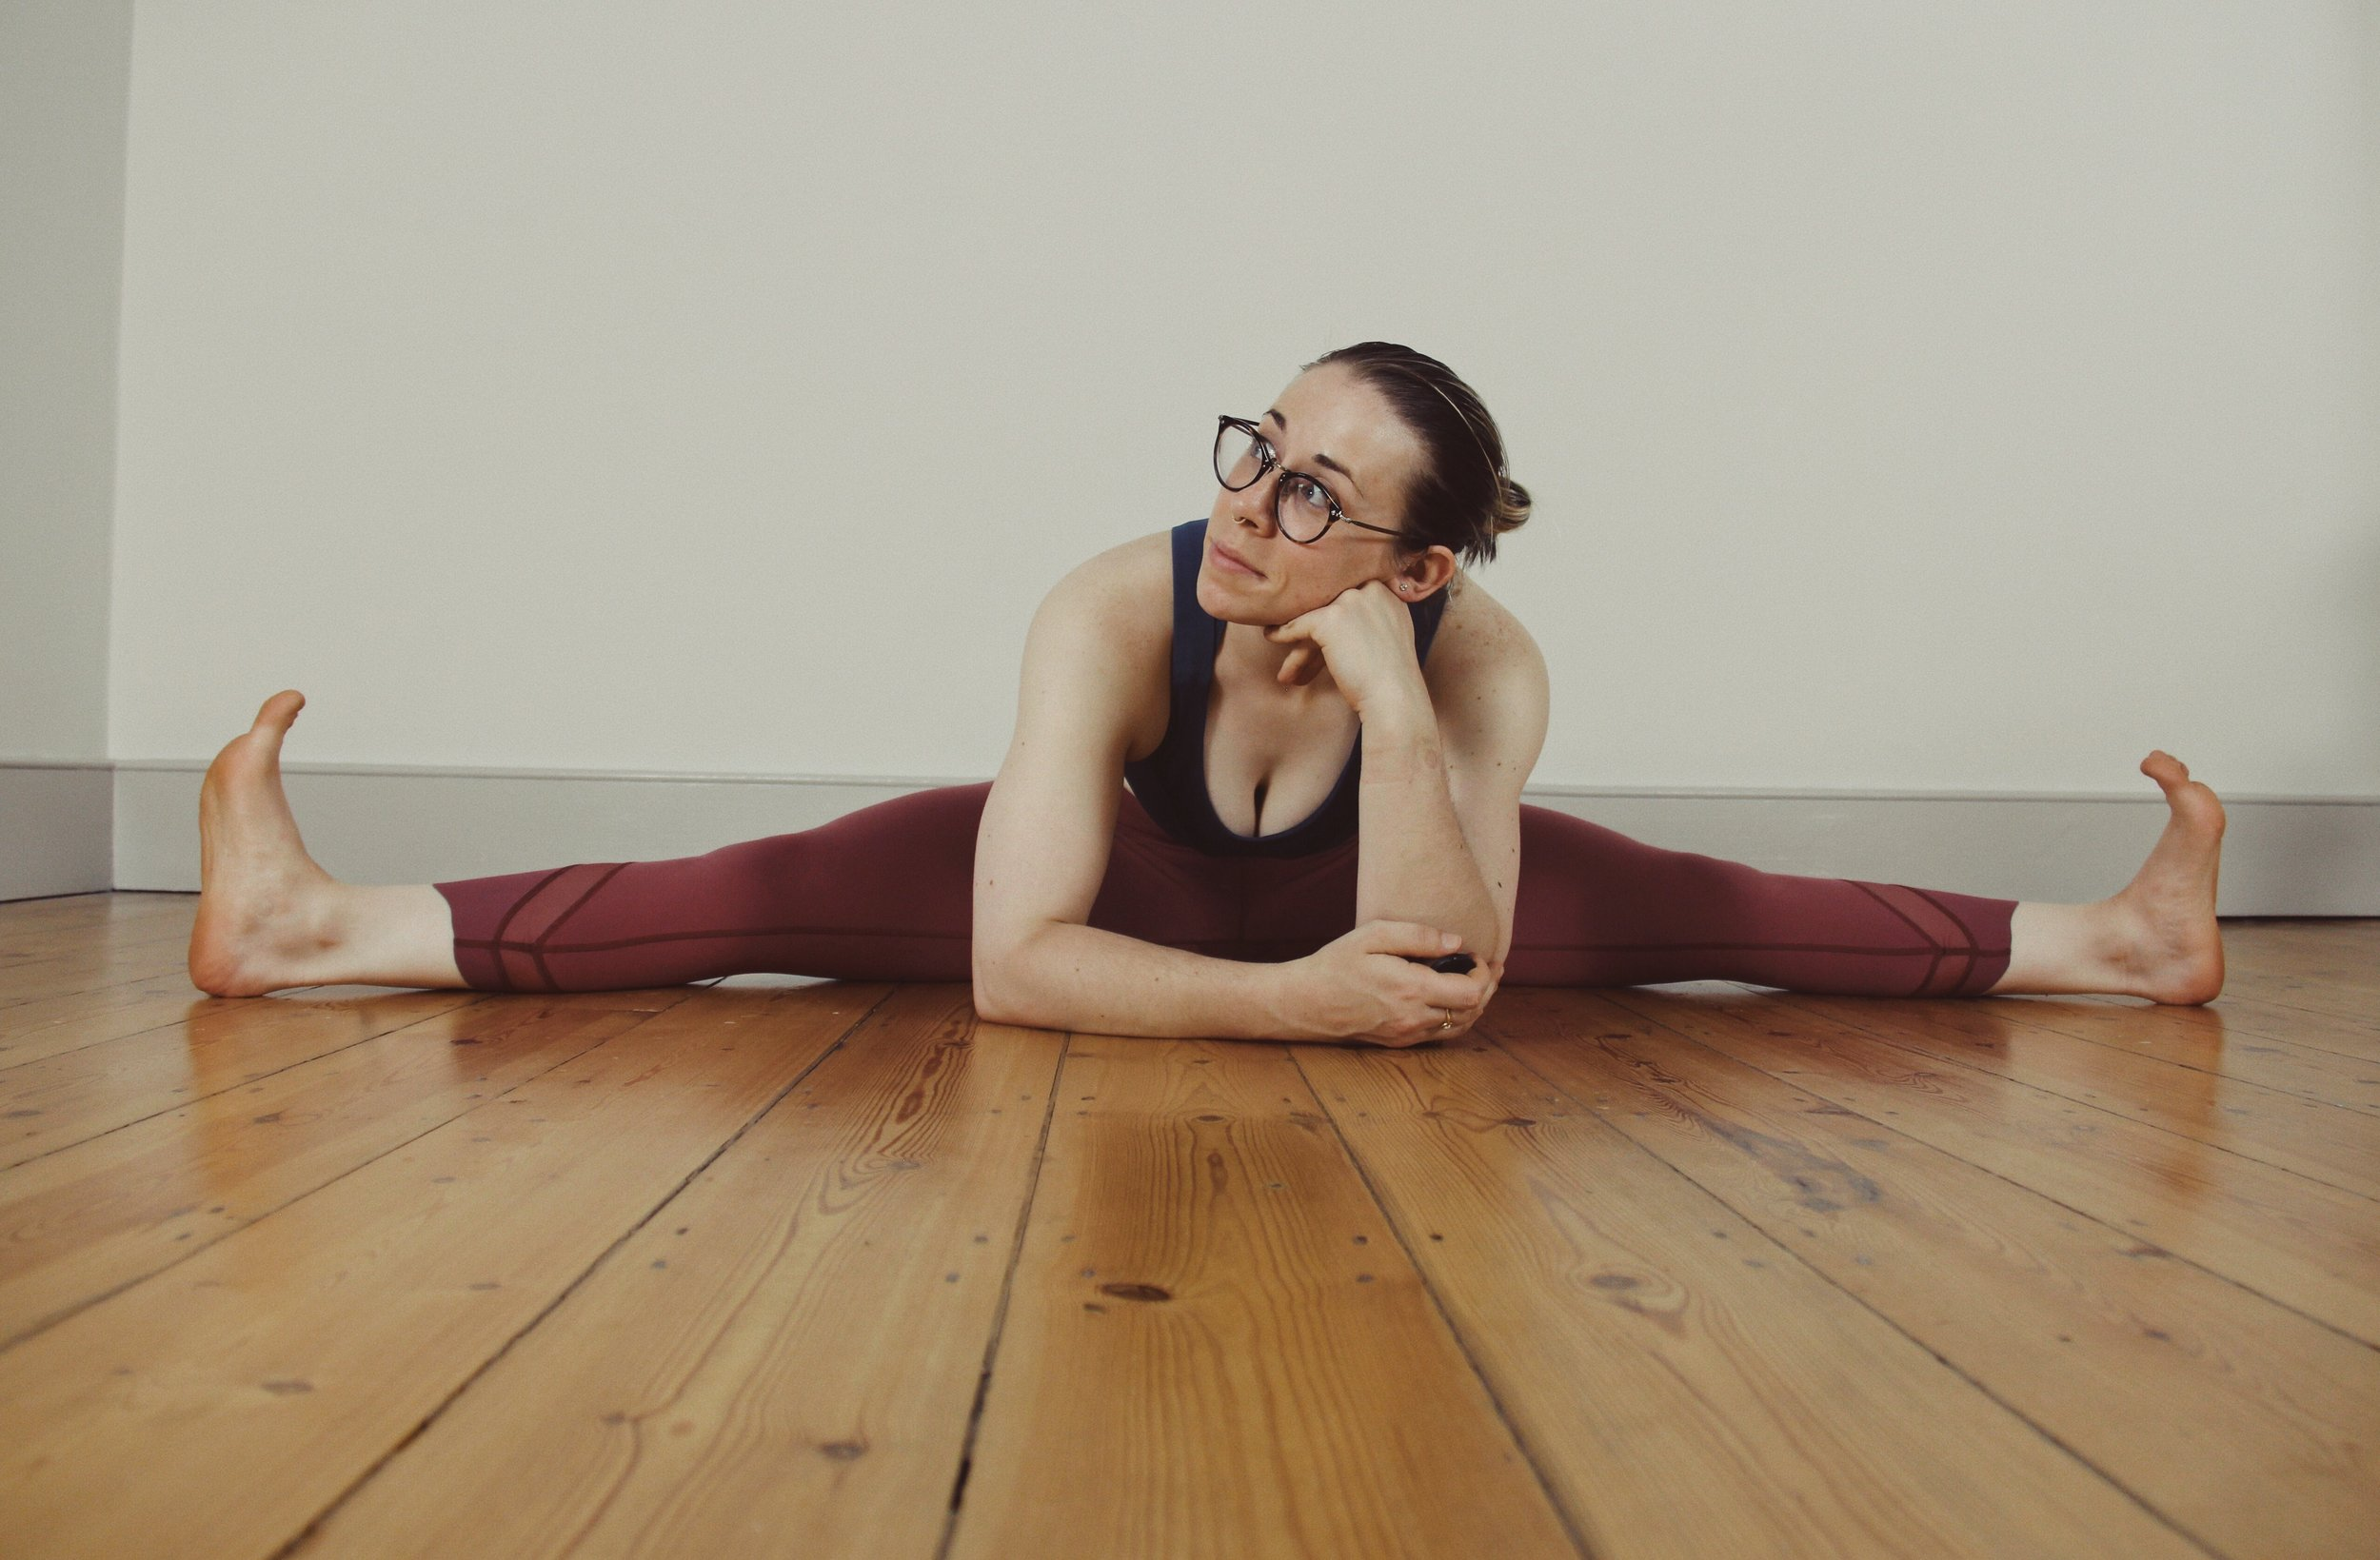 Third new addition: 'Desk Correction Yoga' every Wednesday from 6.35-7.25pm - Location: CitySport, 124 Goswell Rd, Clerkenwell, London, EC1V 7DP